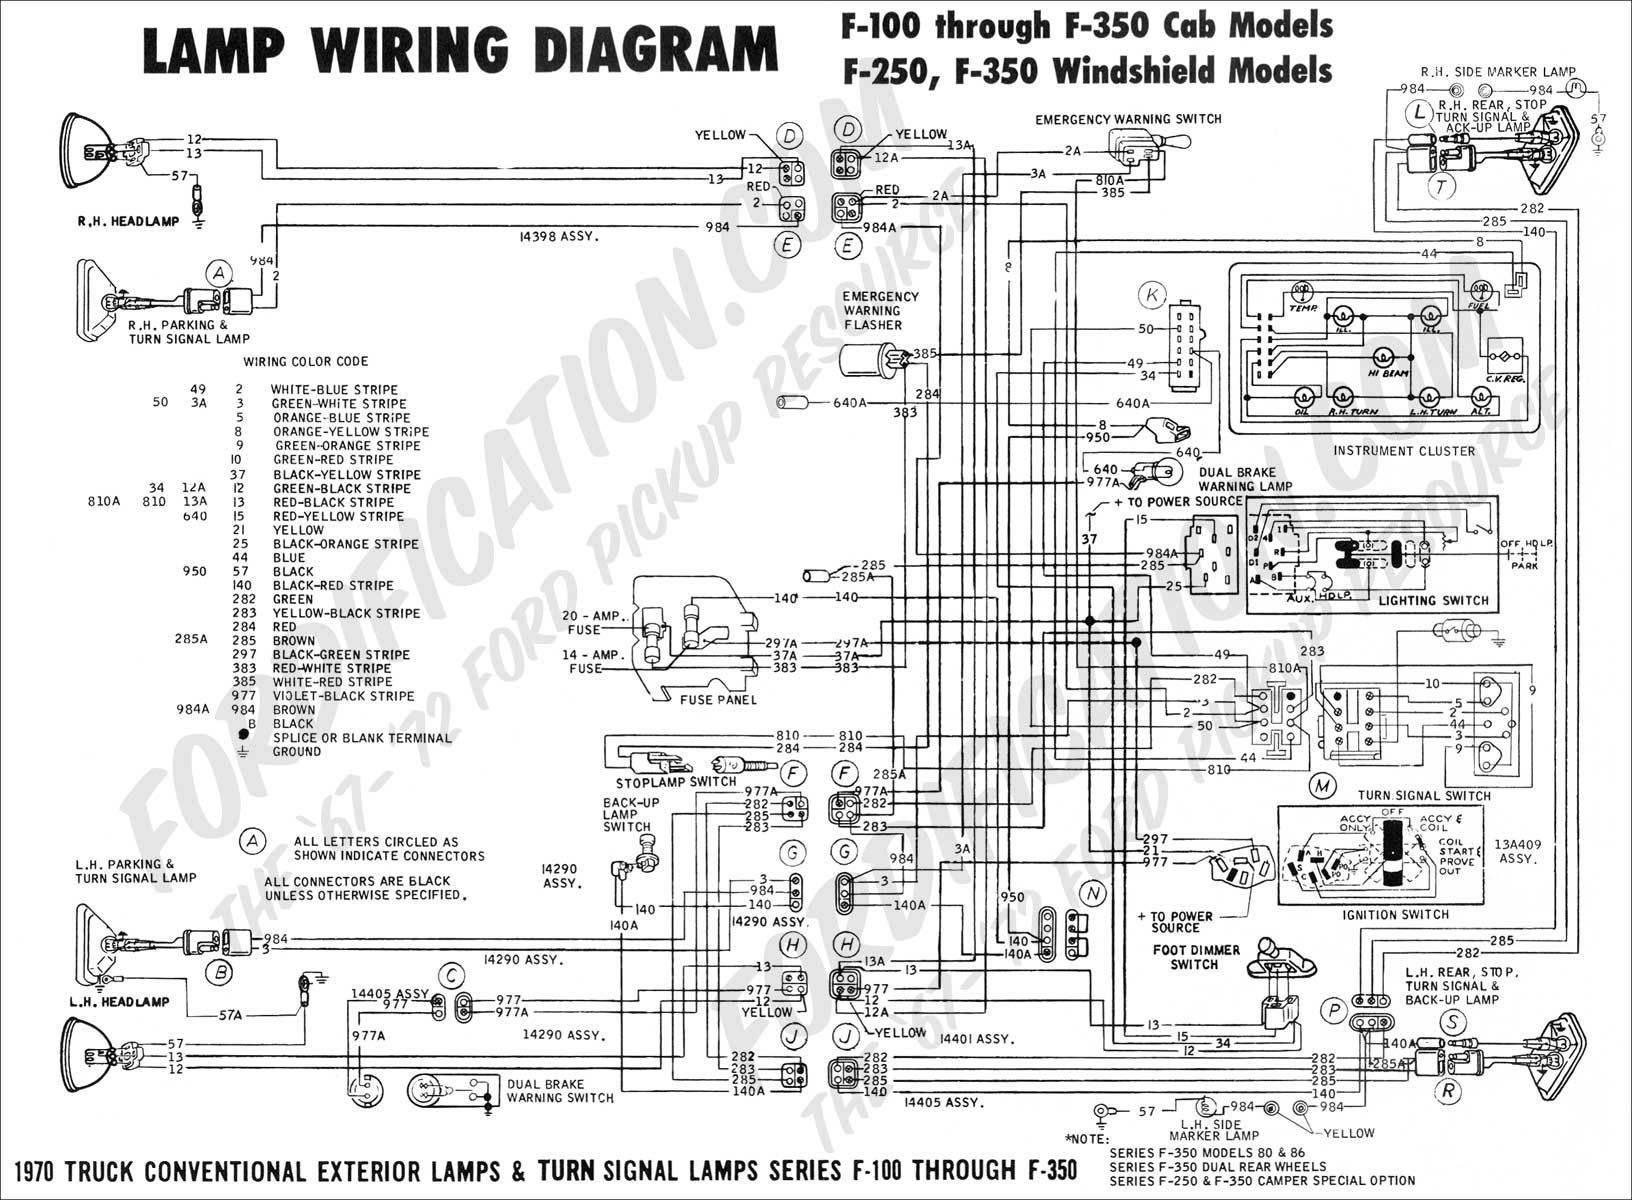 Picture Of Ford Wiring Diagram 79 Ford F 250 Wiring Wiring Diagram Ford Wiring Diagram Book Electrical Wiring Diagram Electrical Diagram Trailer Wiring Diagram